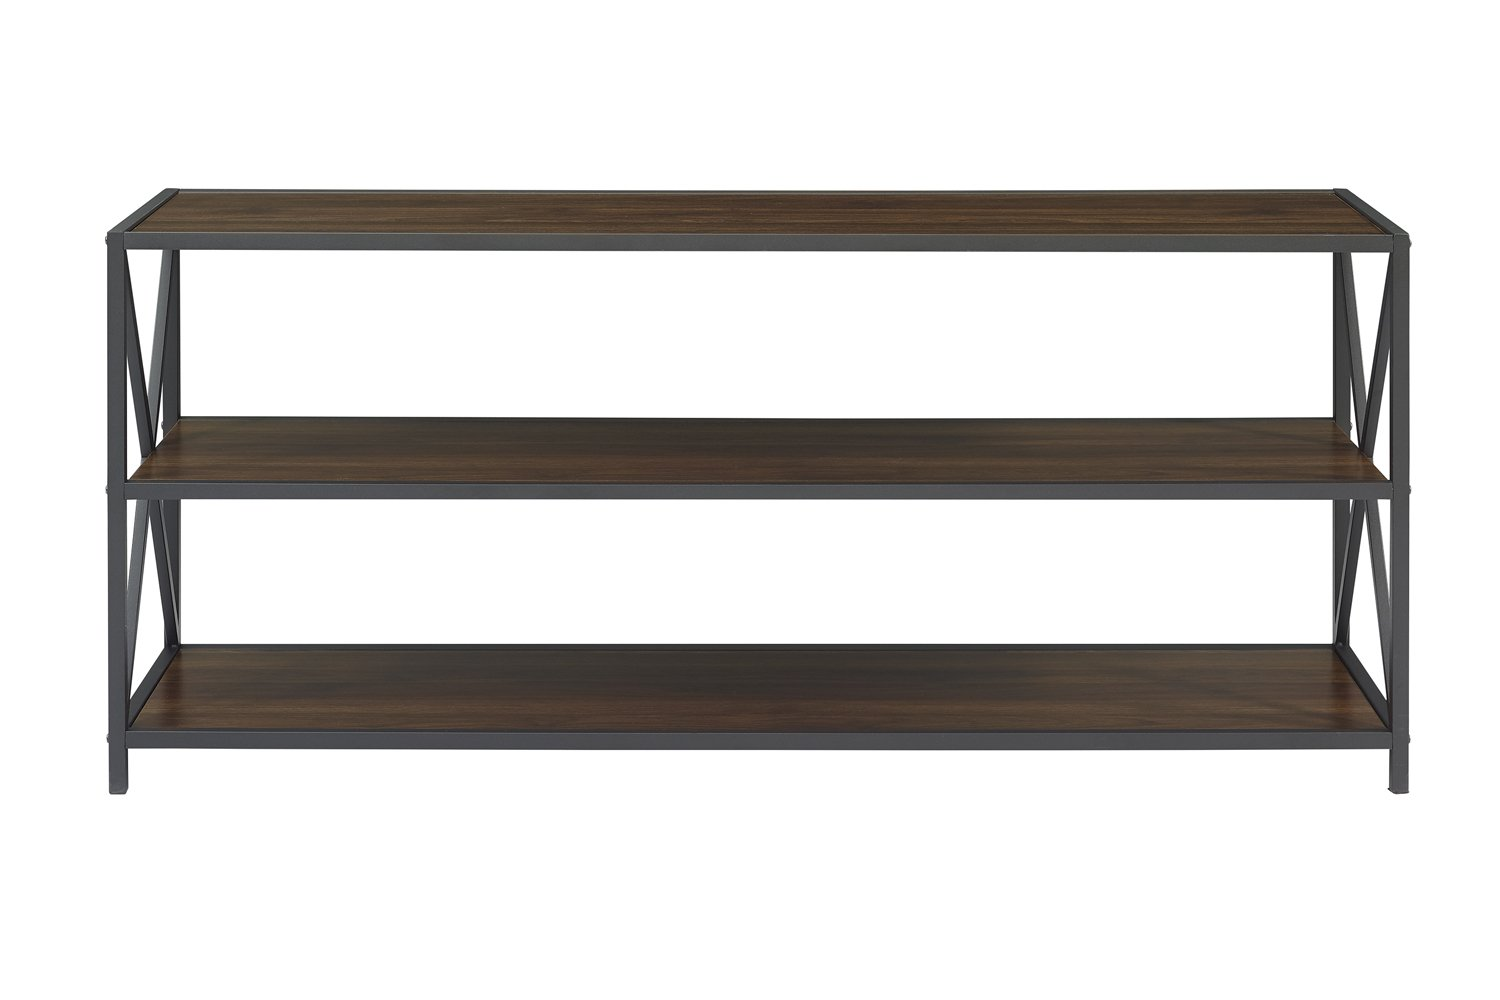 WE Furniture AZS60XMWDW Console Table, Dark Walnut